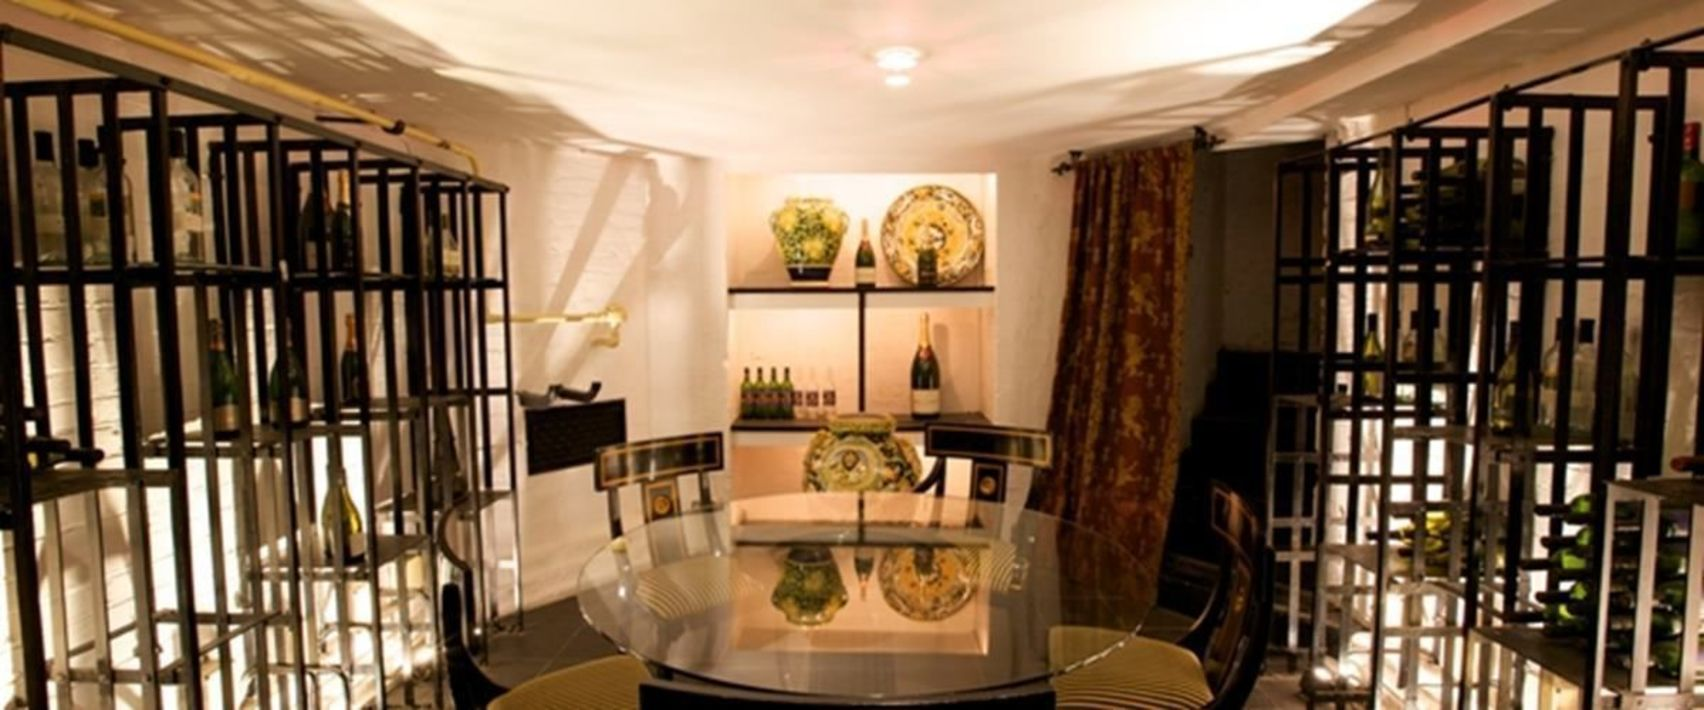 The Cellar Event Room, The Royal Horseguards